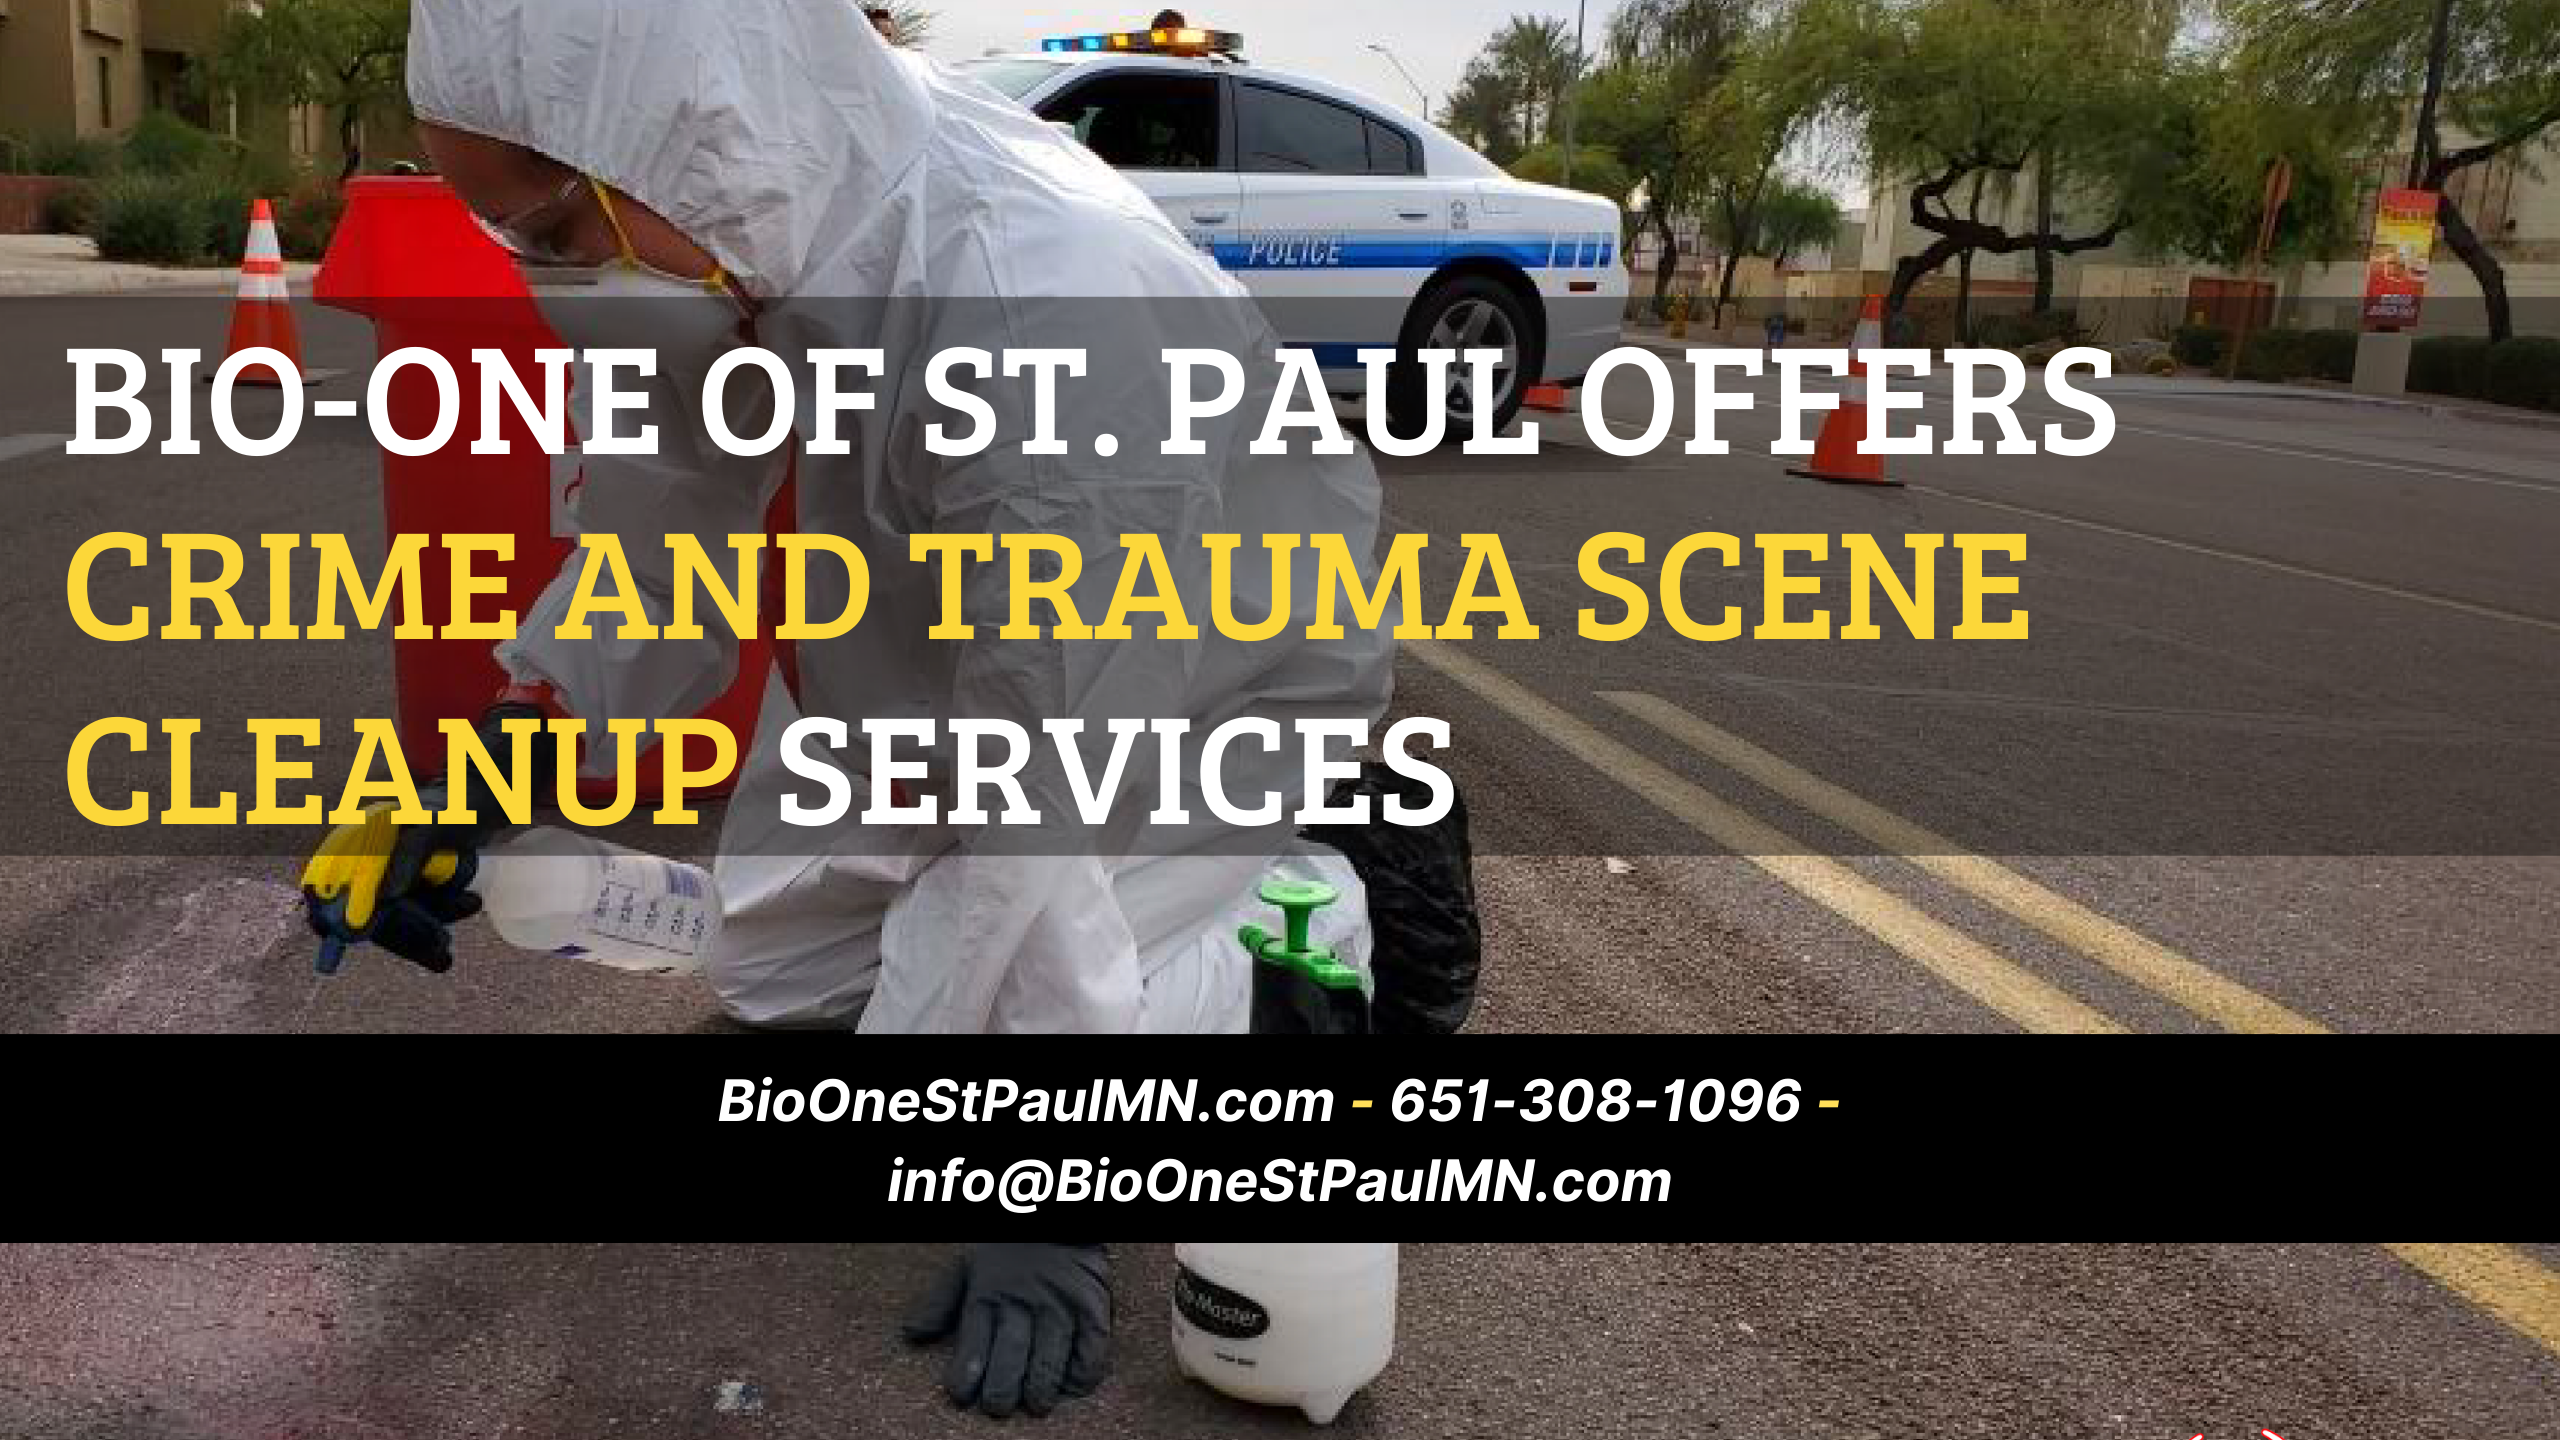 Bio-One of St. Paul offers Crime and Trauma Scene Cleanup Services - Available 24/7!